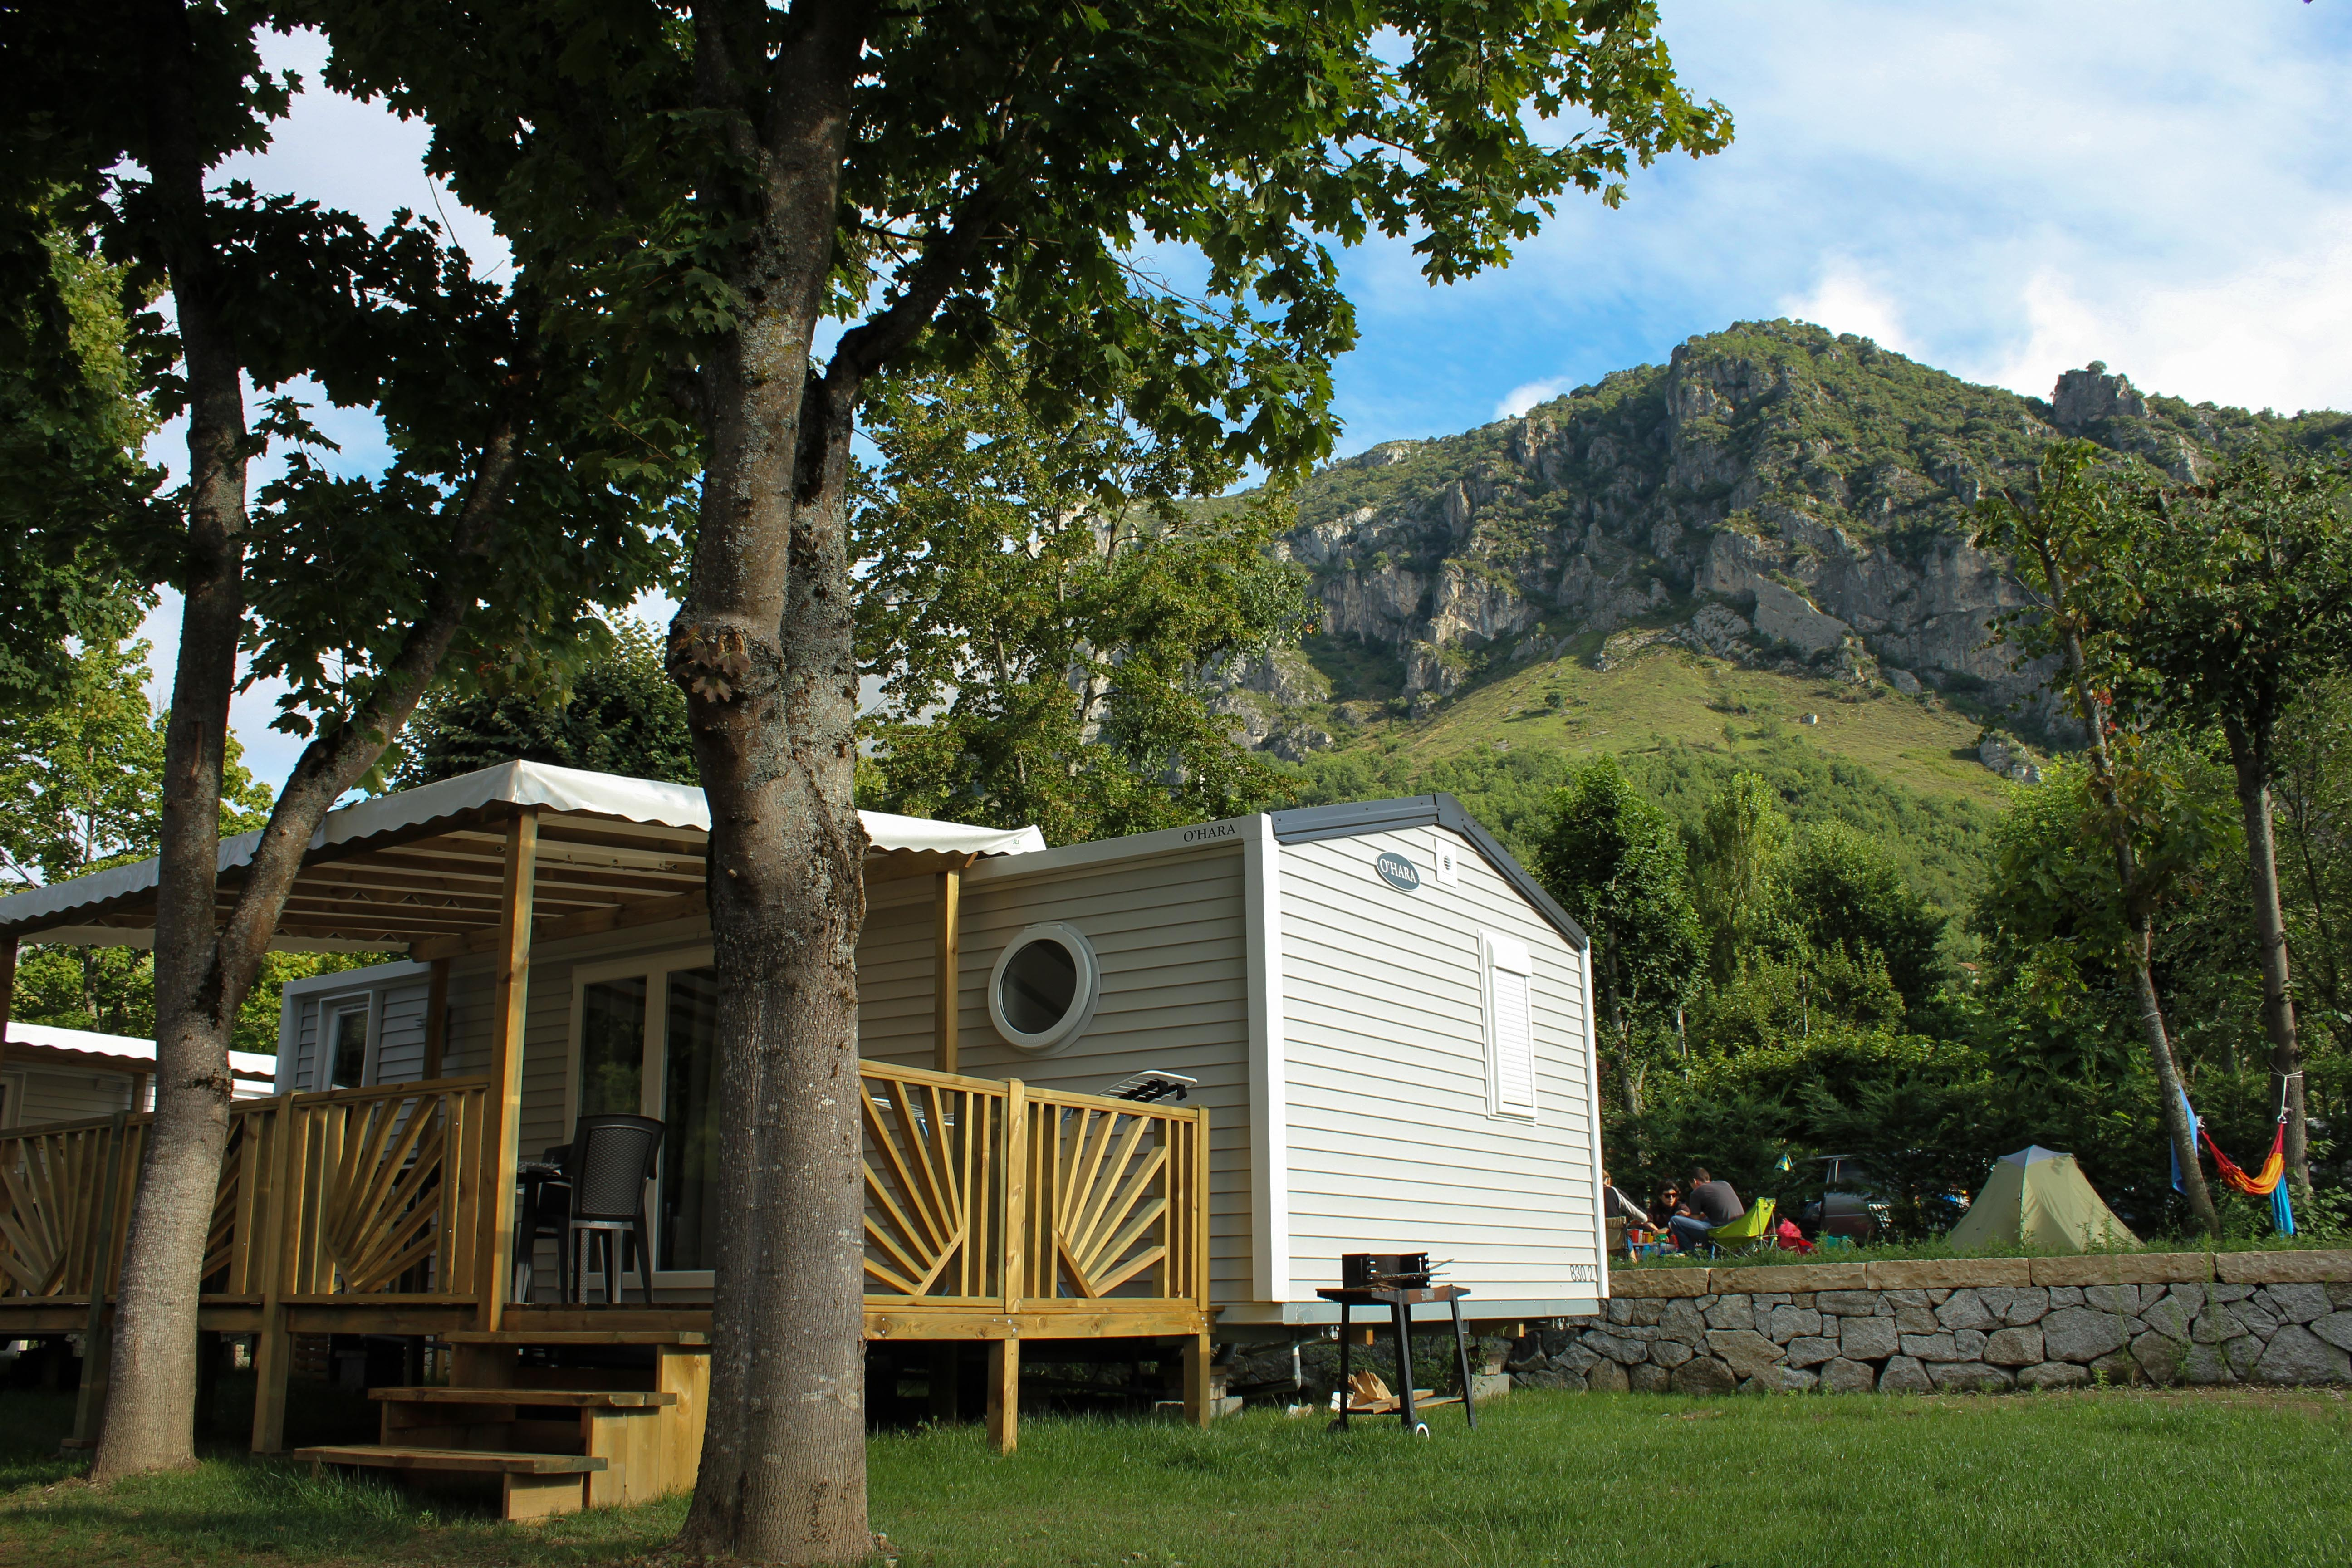 Achat Camping Mobil Home Mobil Home Ariège Achat Vente Mobilhome Sur Camping Parcelle